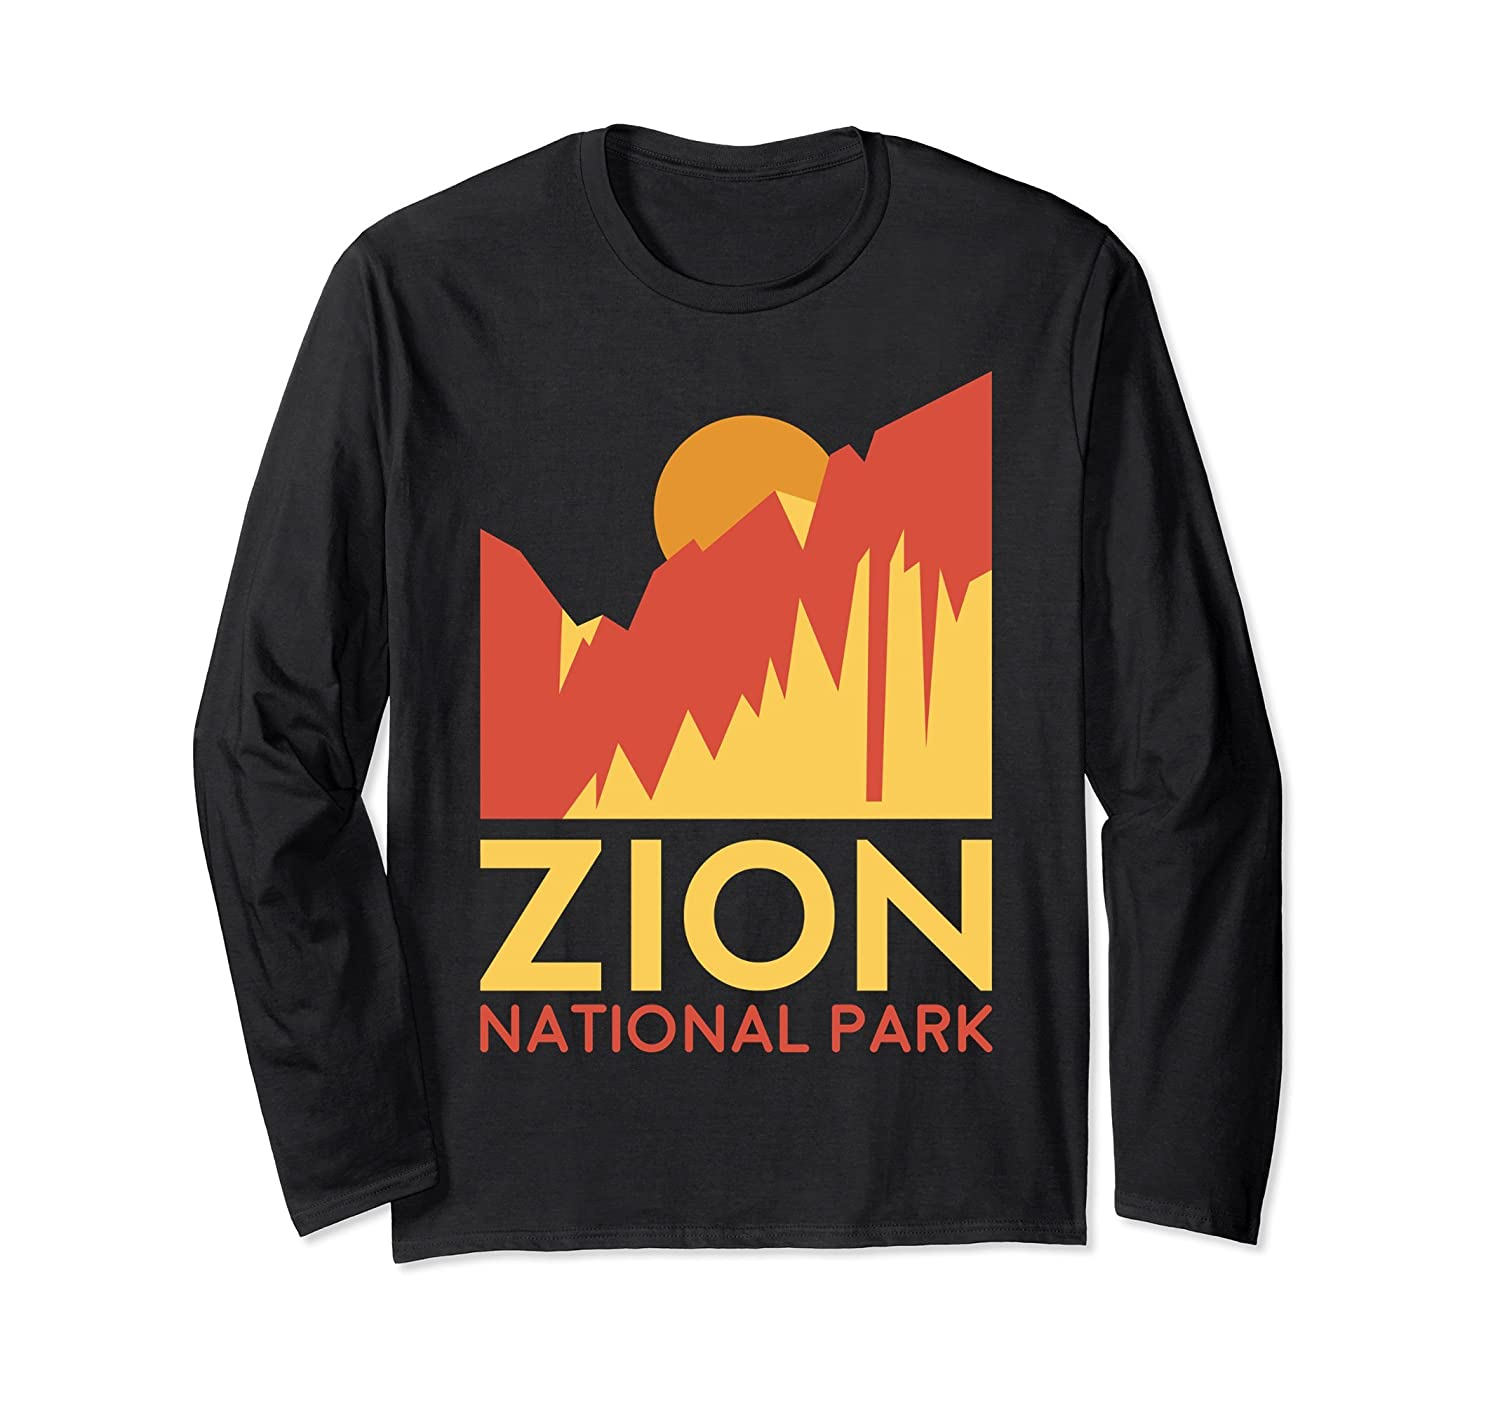 Zion National Park Long Sleeve Shirt -Outdoor Camping Hiking-ah my shirt one gift